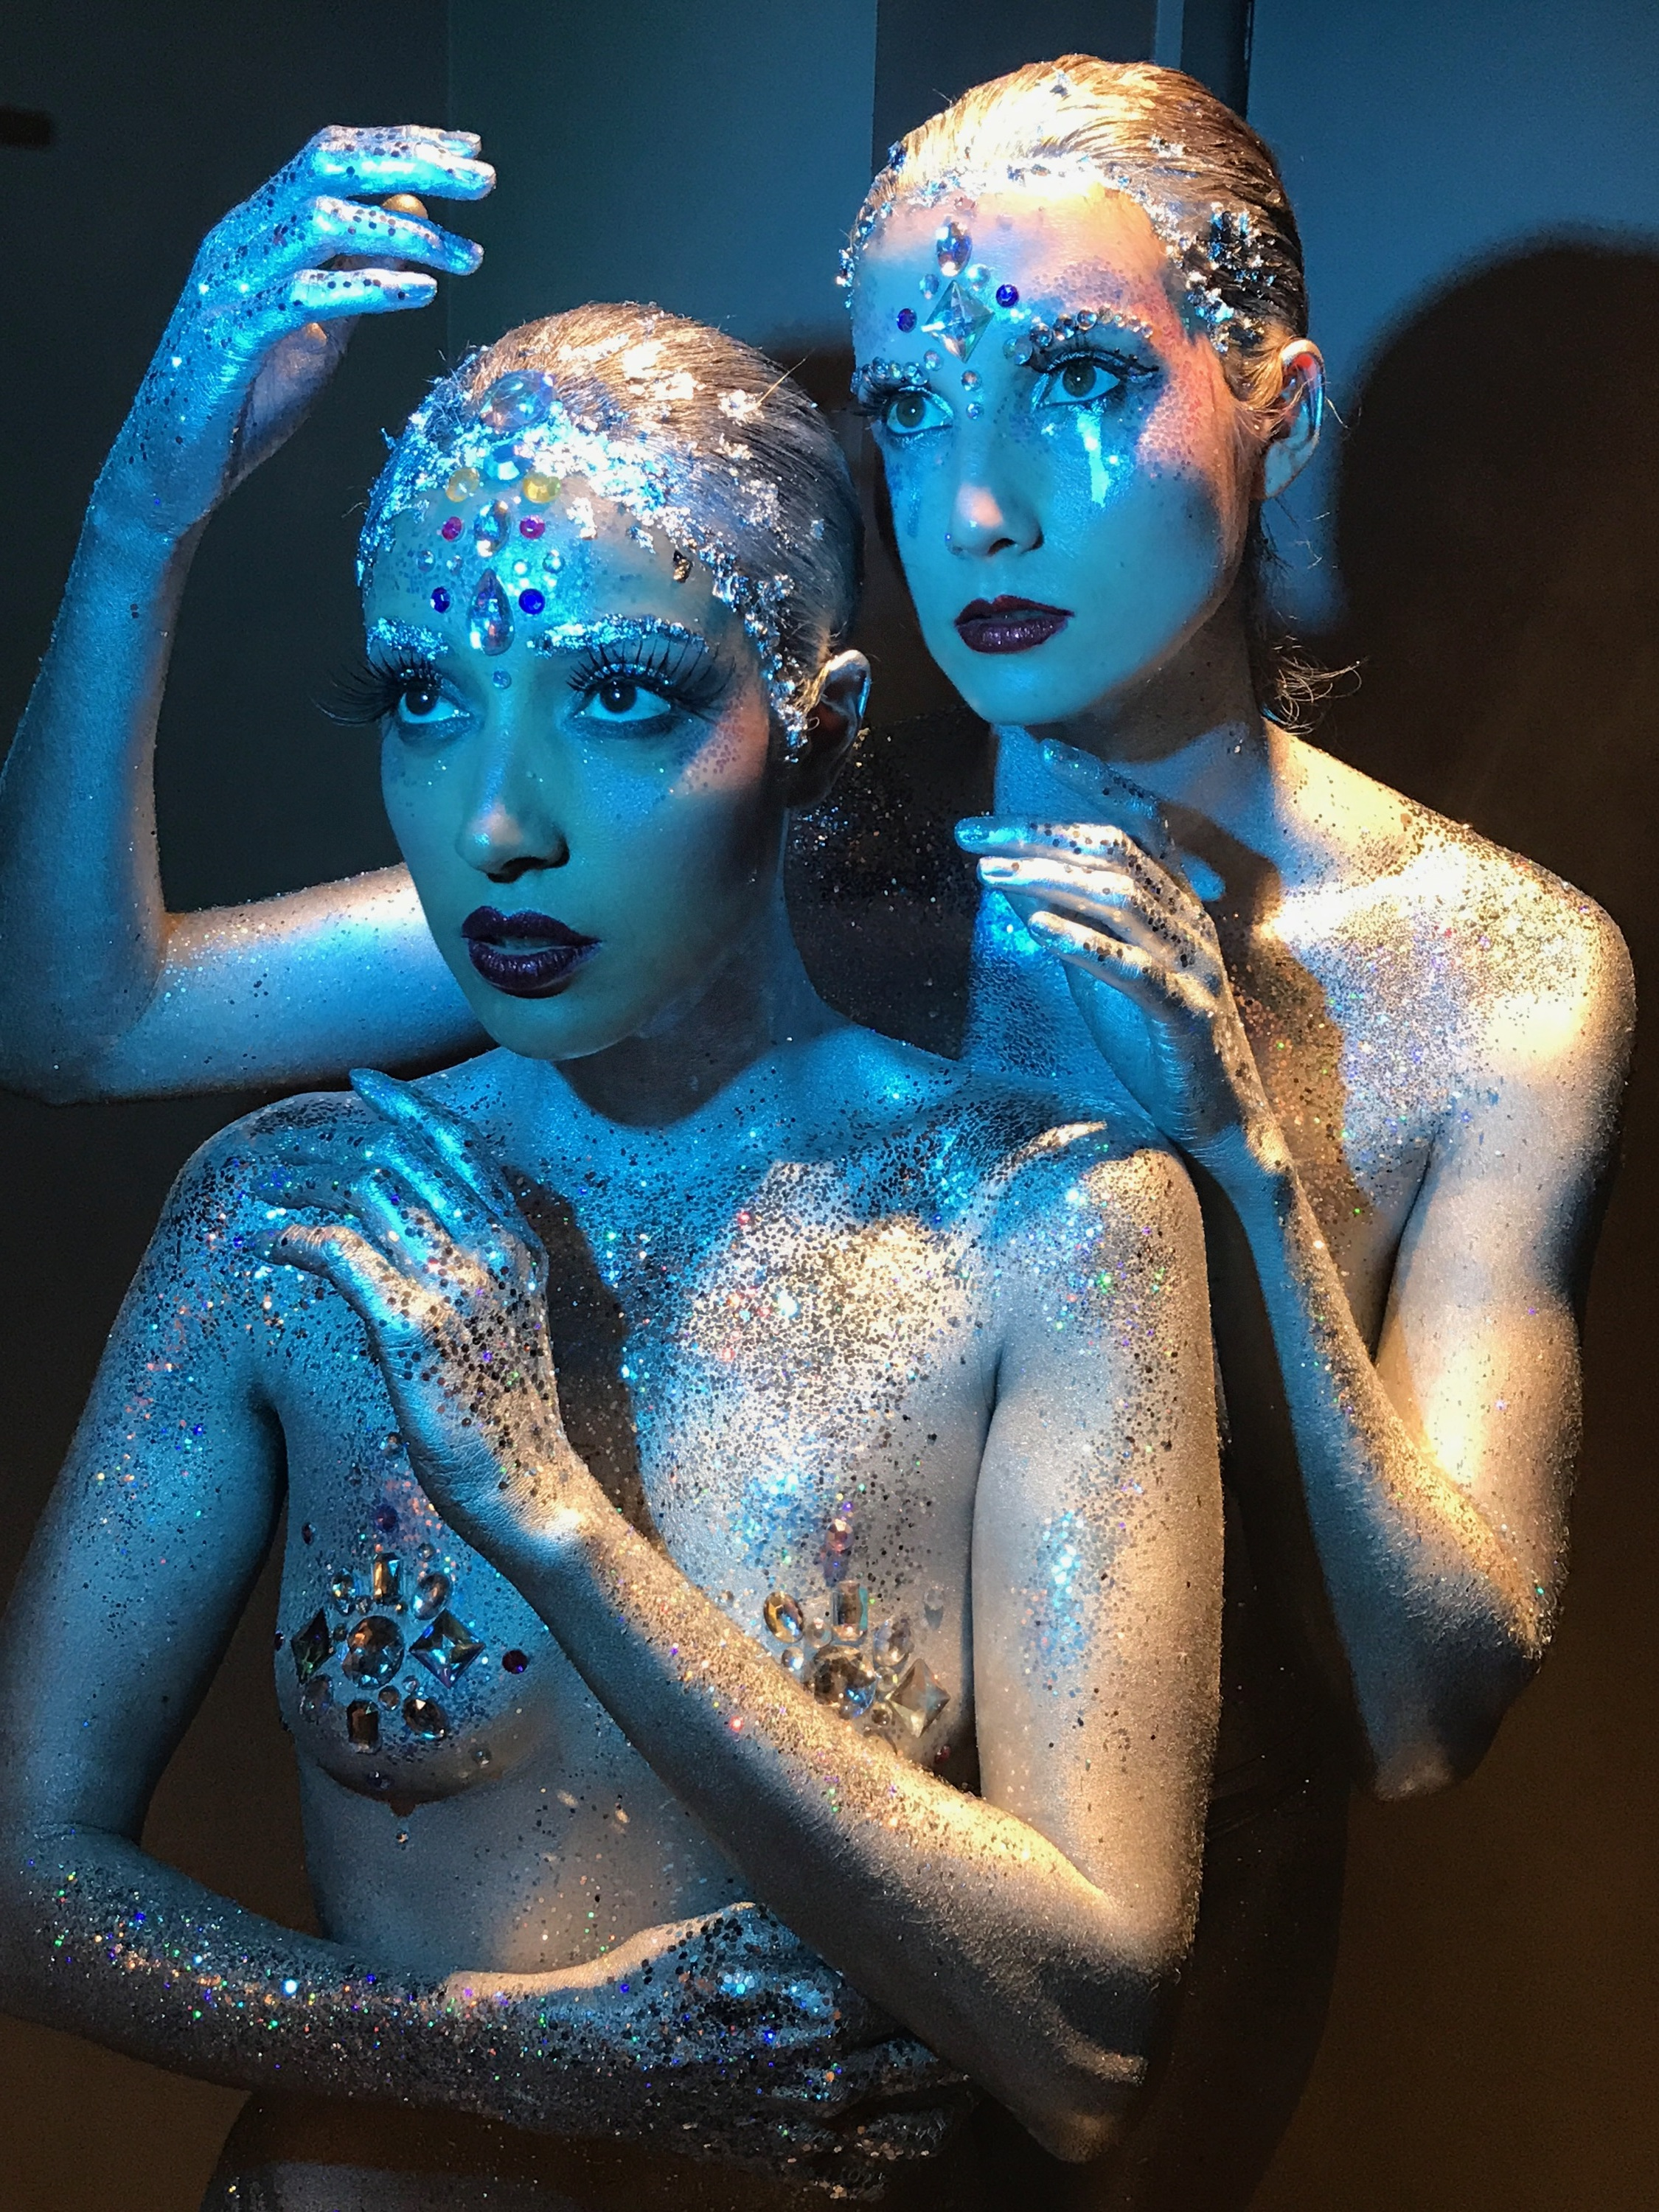 9 7 17 Glitter Tears Body Painting Private Event Shien Producer Creative Director Fantasy Architect